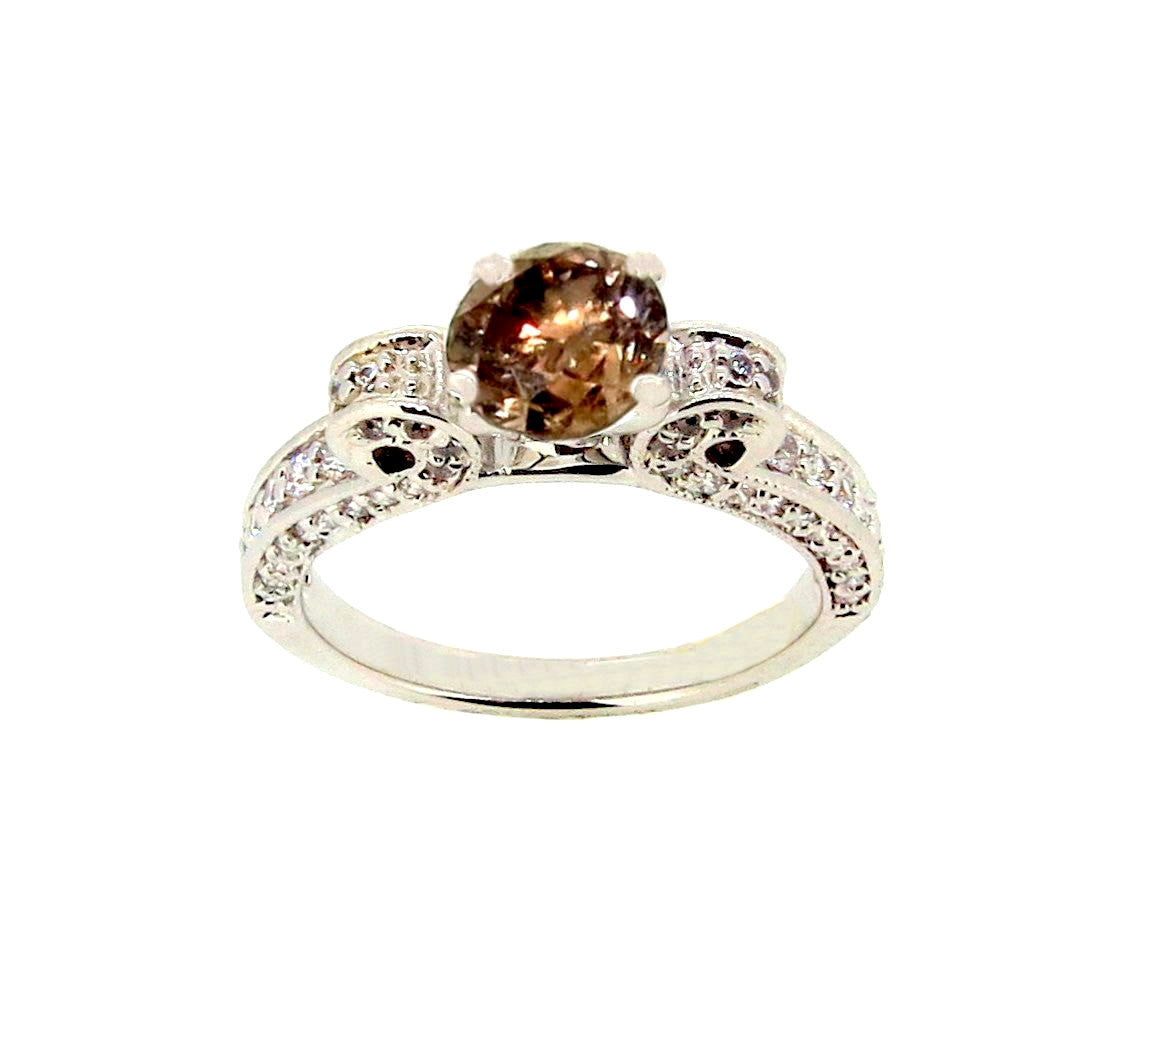 Unique Engagement Ring, 1 Carat Fancy Color Brown Diamond, Anniversary Ring - BD70582